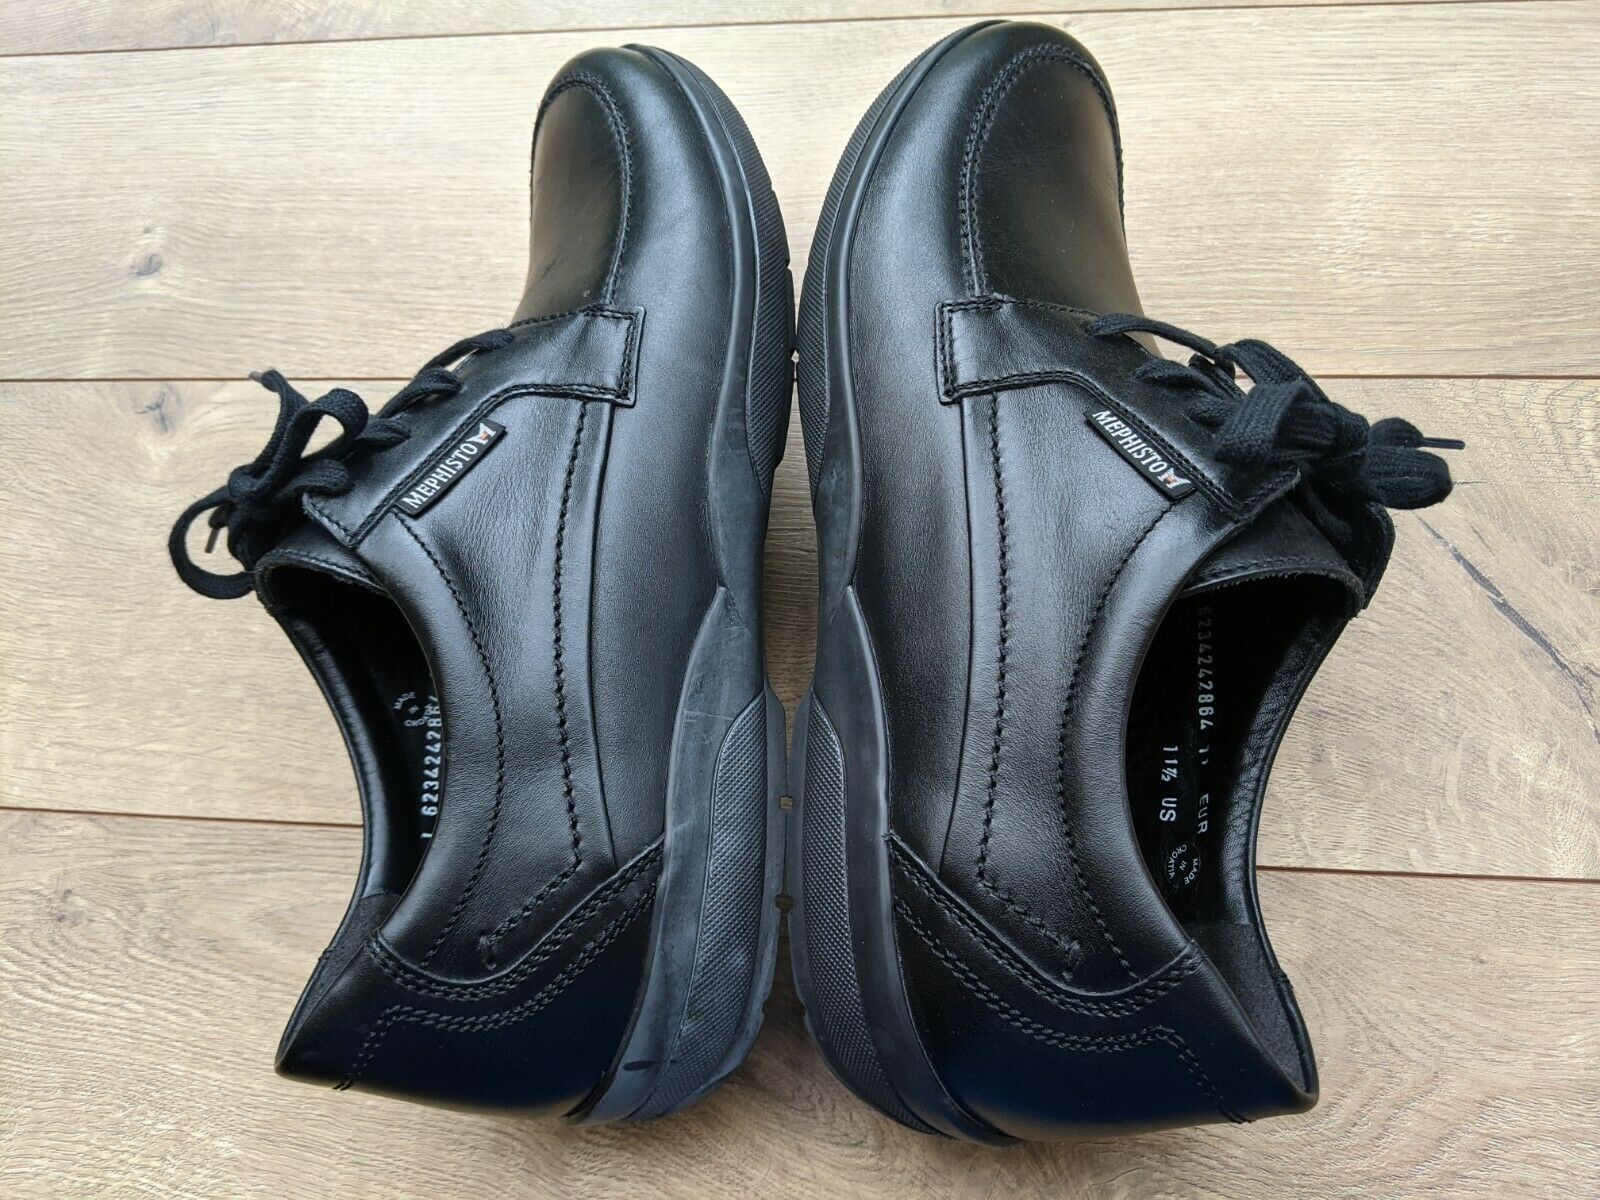 Mephisto Air-Jet Black Leather Cushioned Casual/Travel/Walking Shoes US 11.5